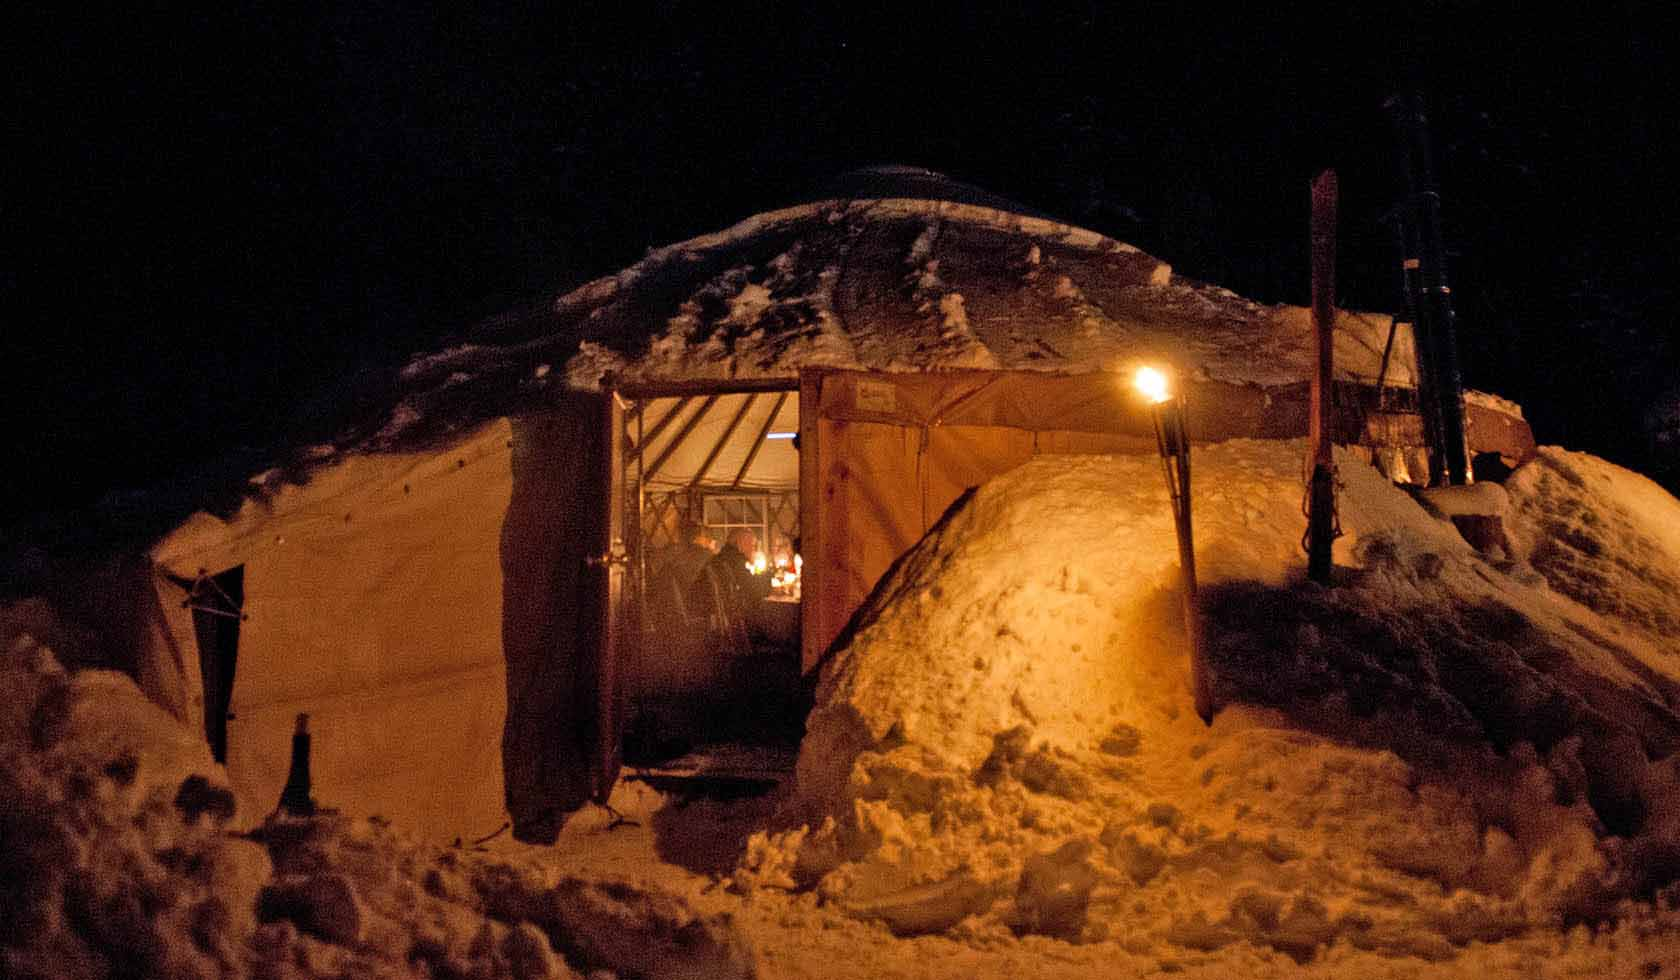 Montana Backcountry Adventures: The Montana Dinner Yurt profile image